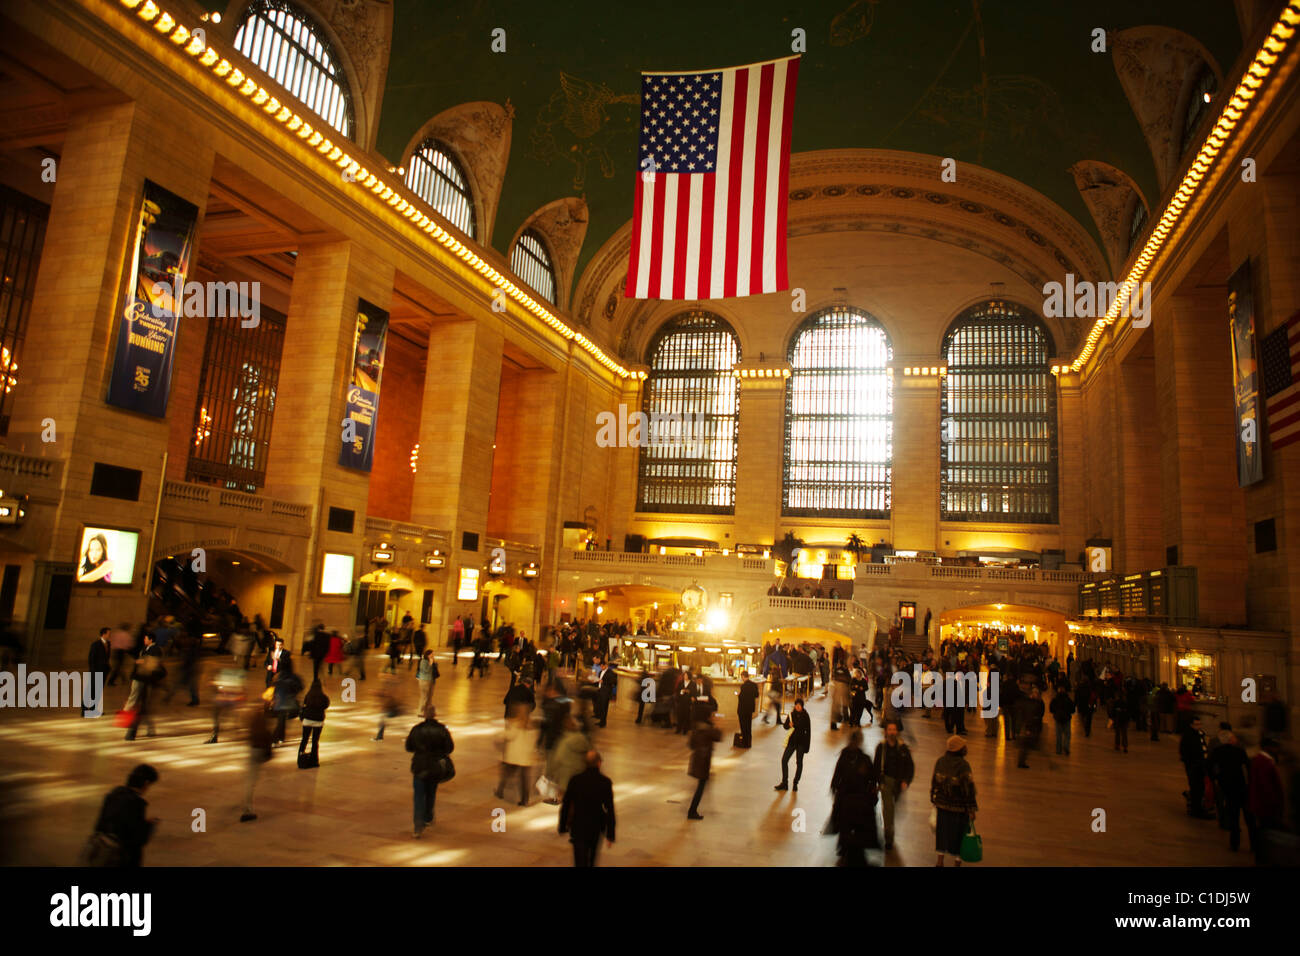 New York Penn Station Stock Photos & New York Penn Station Stock ...